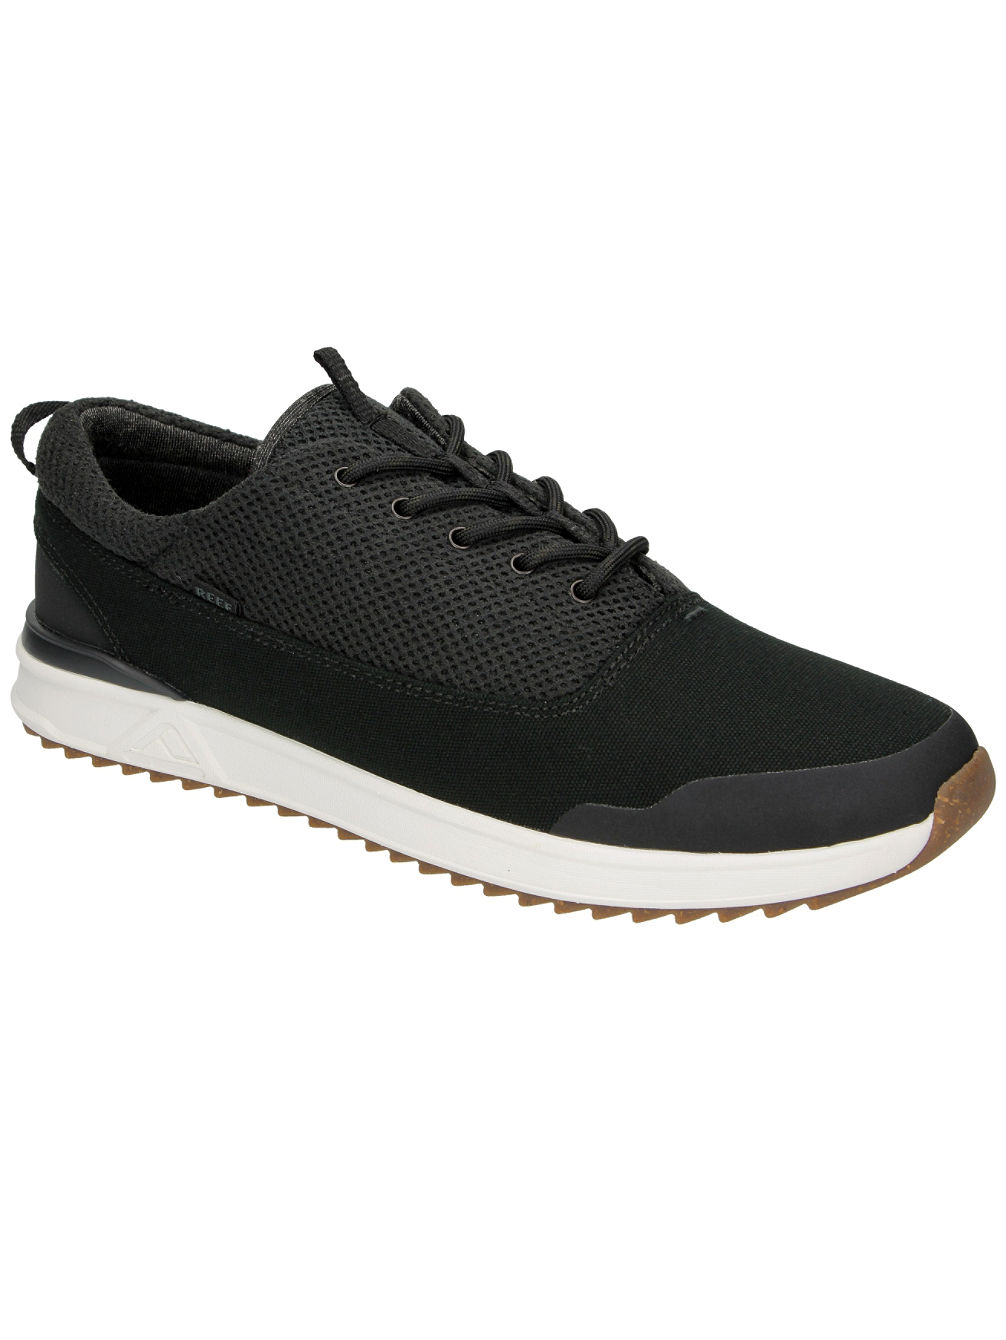 Rover Low Xt Sneakers